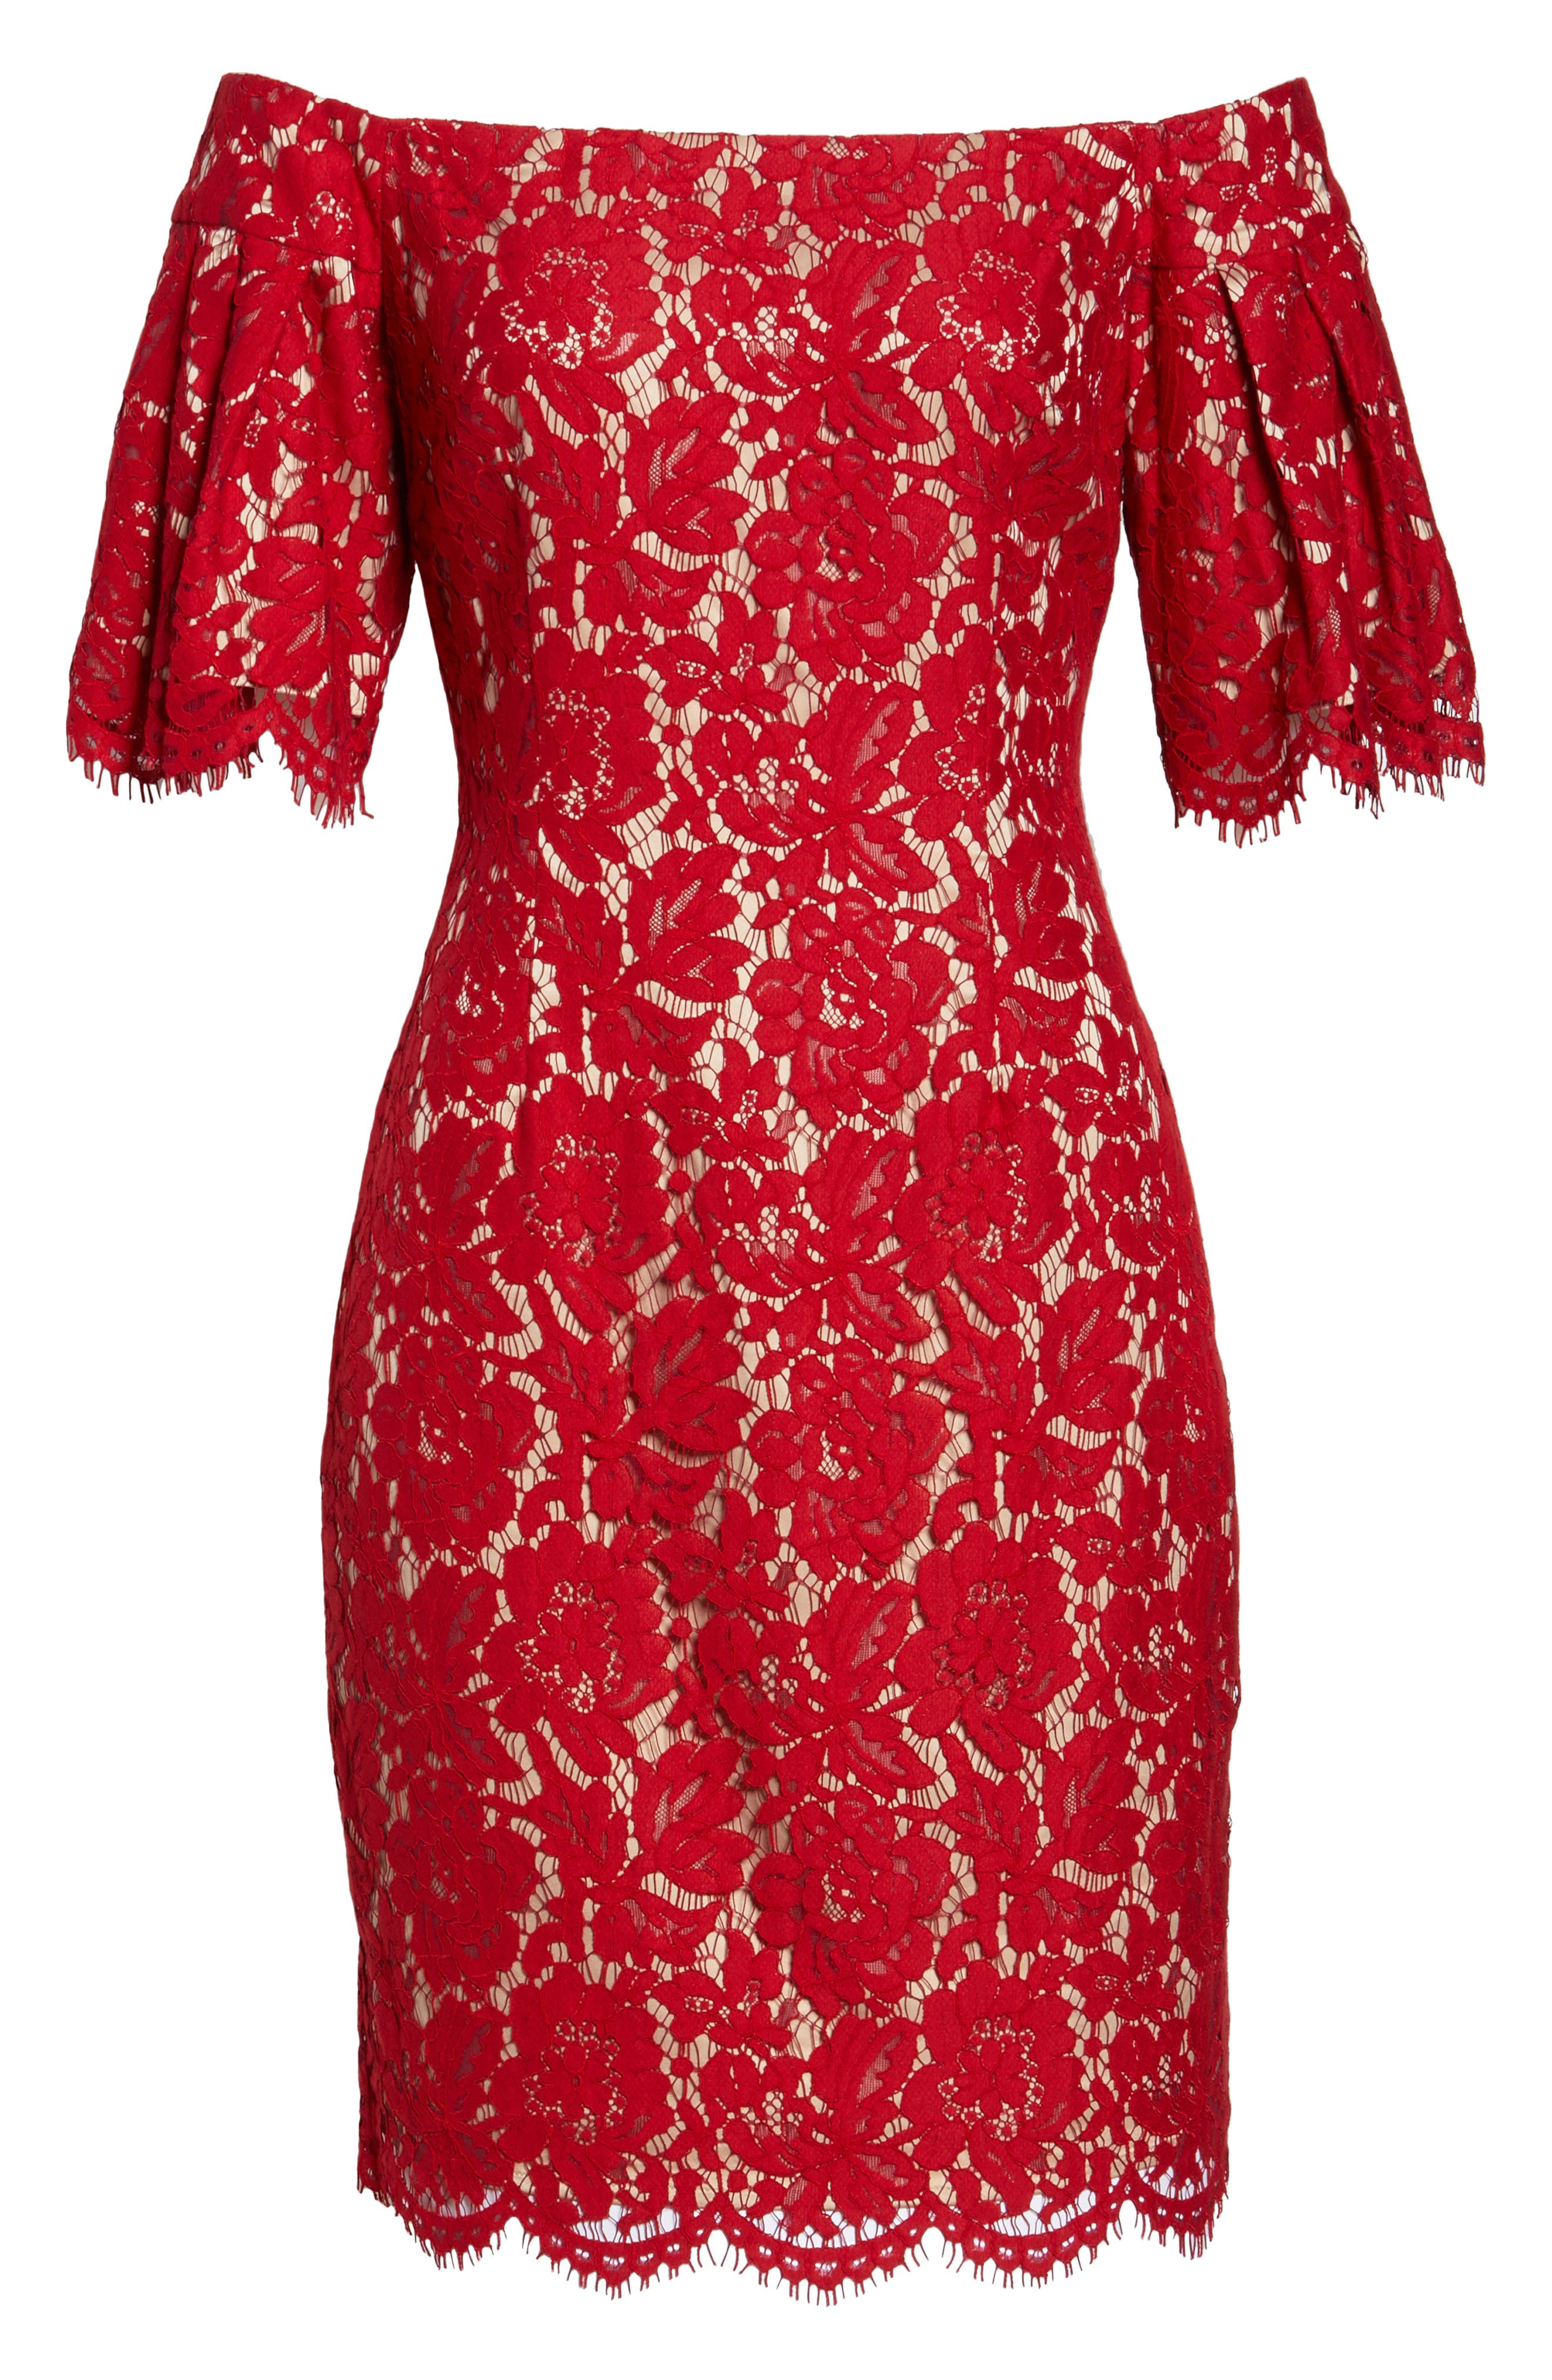 Flounce Sleeve Off the Shoulder Lace Sheath Dress,                             Alternate thumbnail 6, color,                             Red